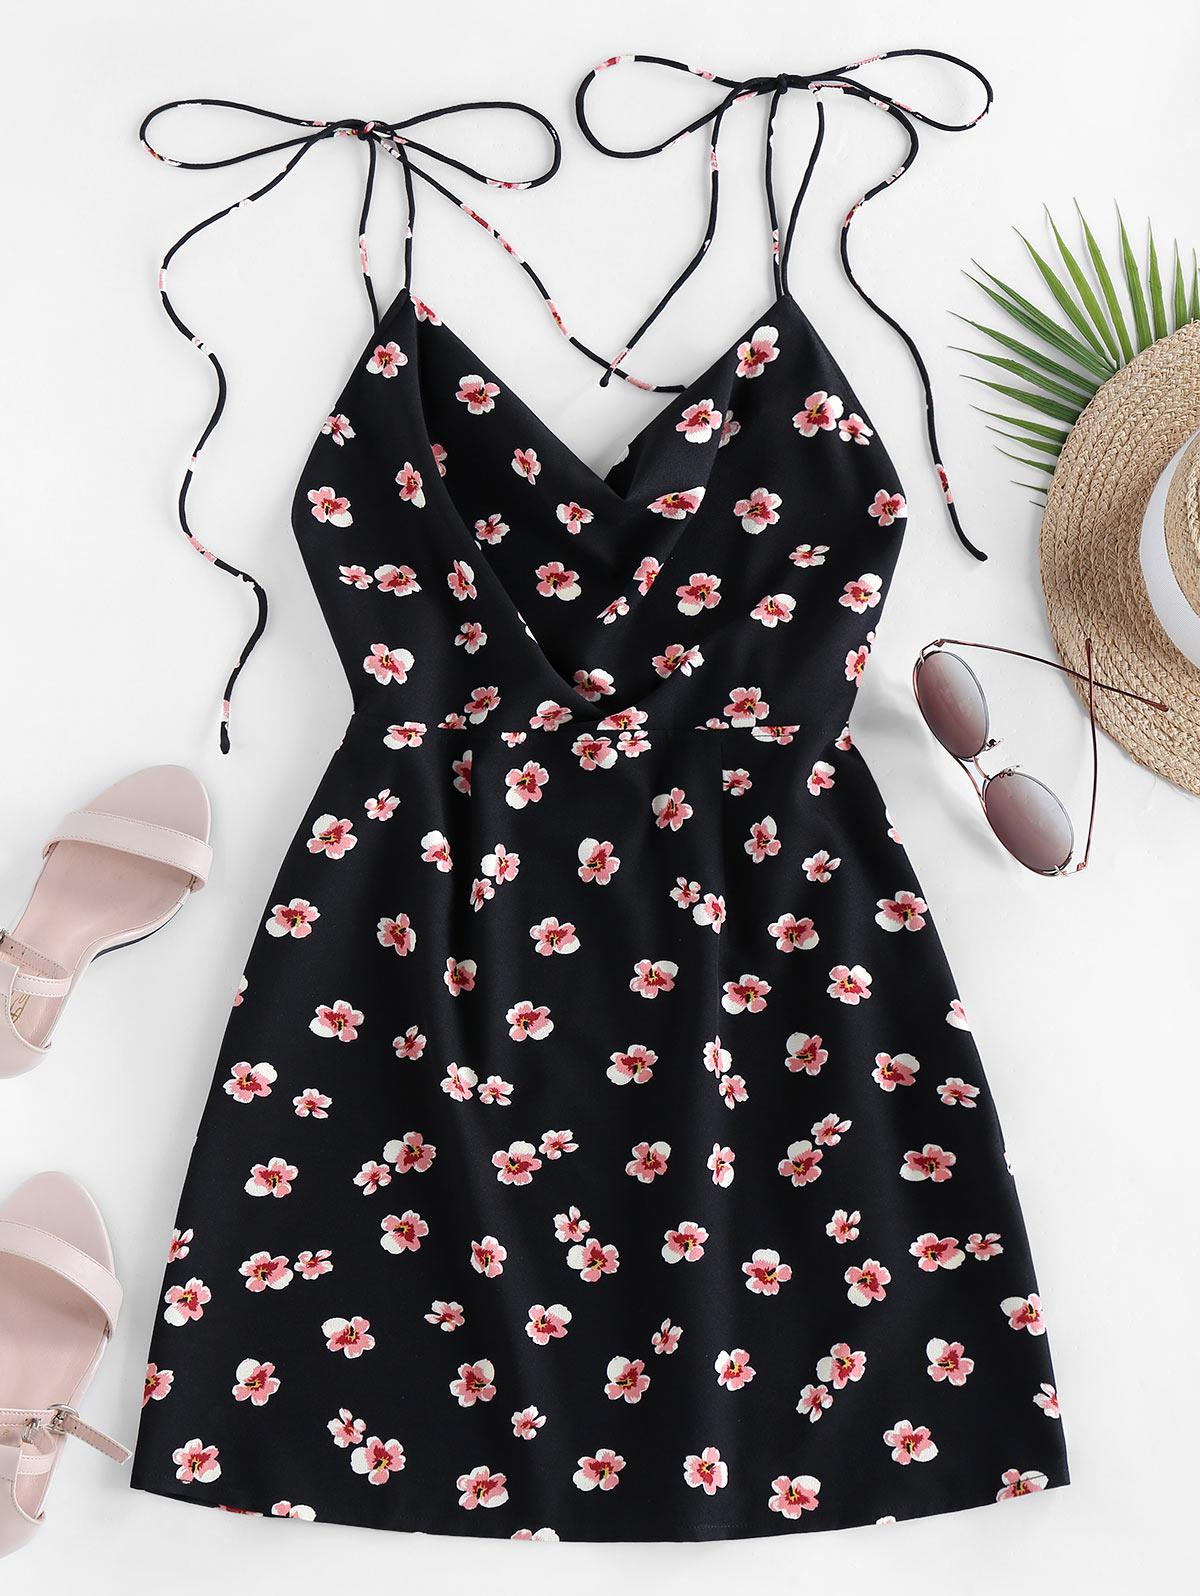 ZAFUL Ditsy Print Tie Shoulder Backless Dress